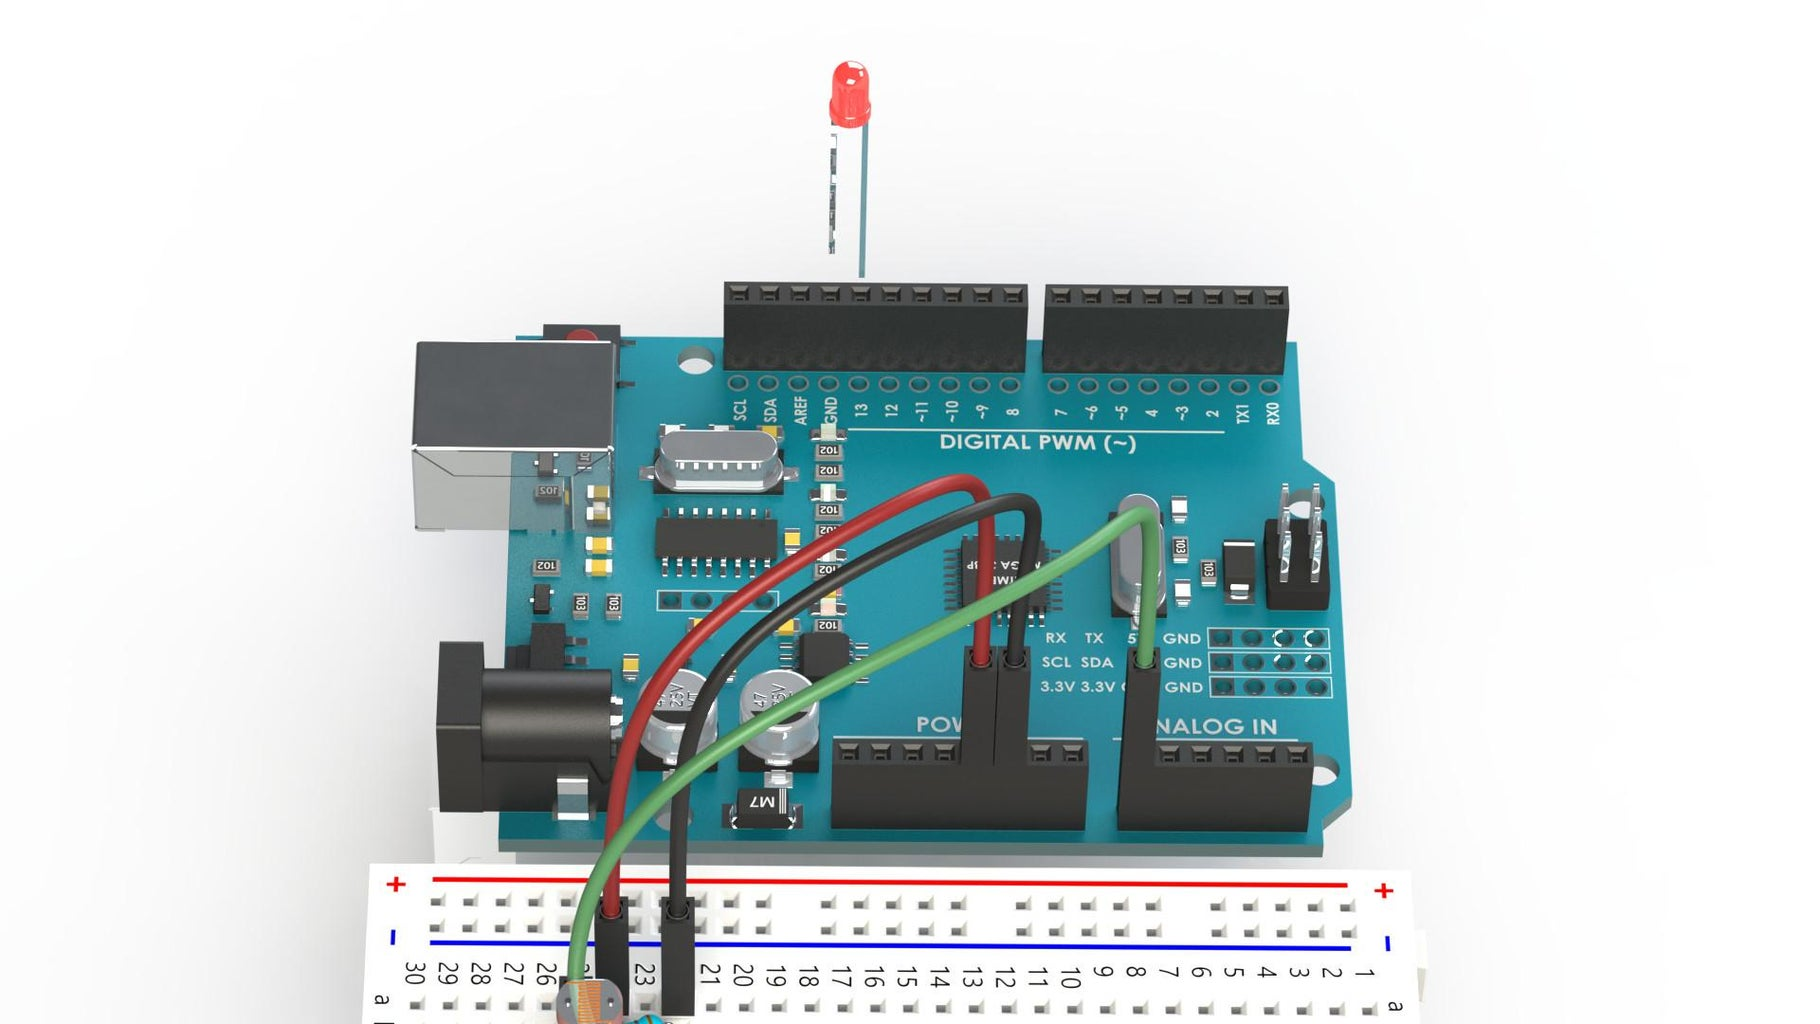 Wiring the LDR With an LED